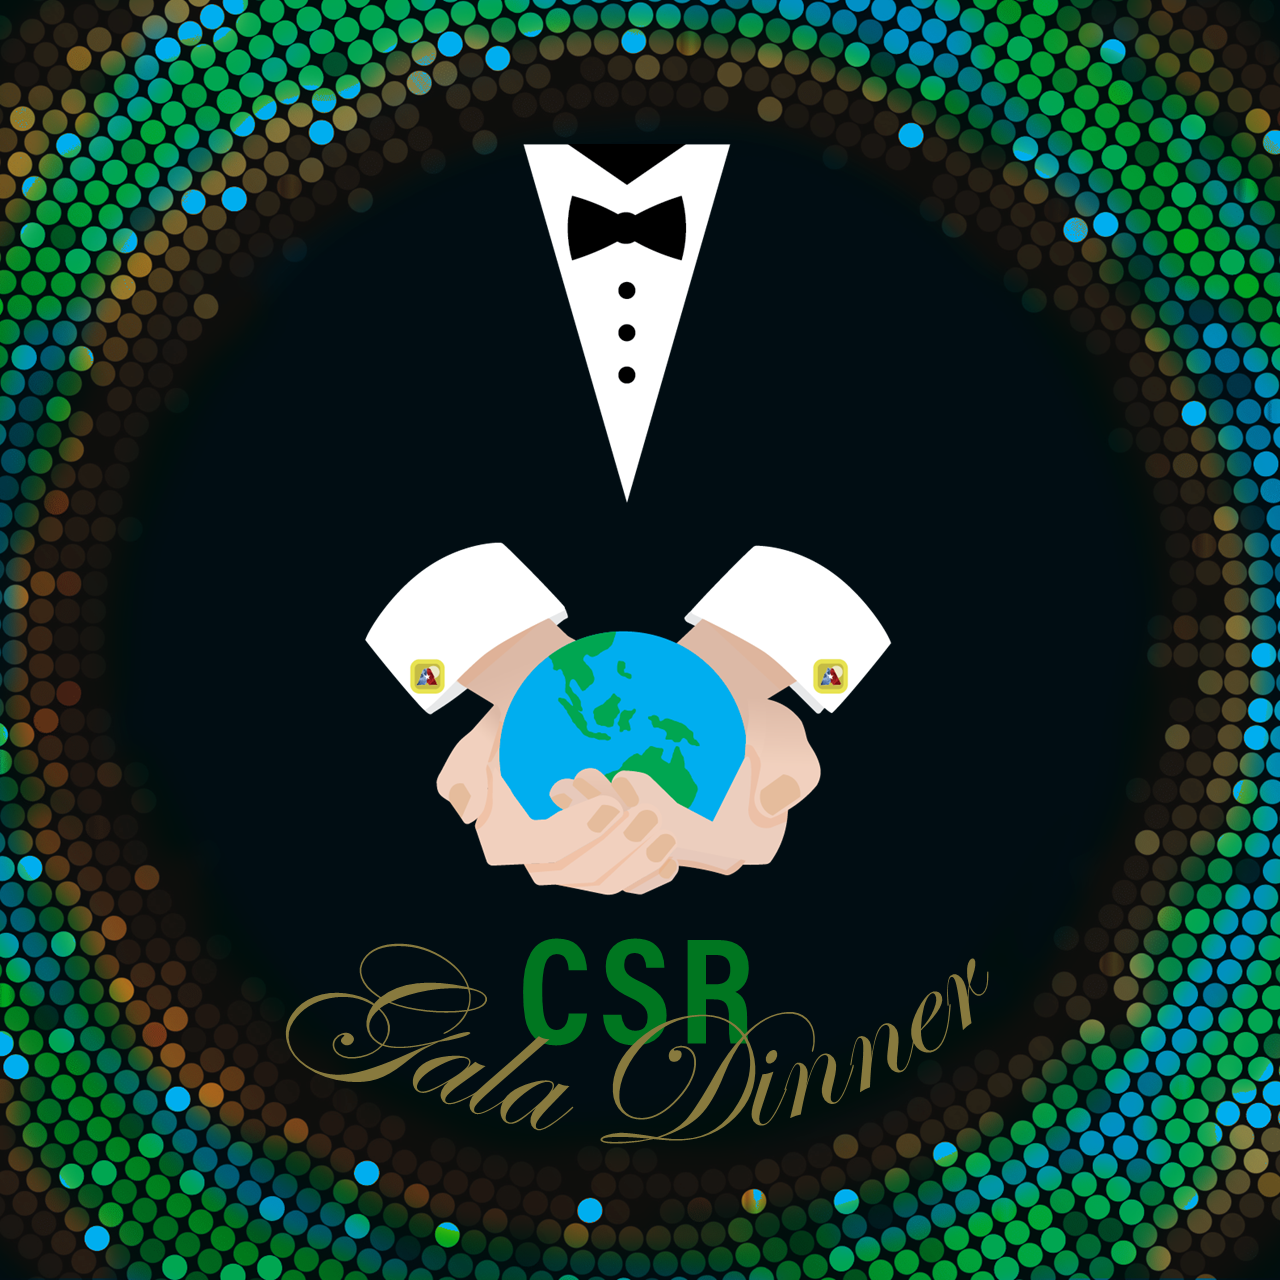 Corporate Social Responsibility Gala Dinner